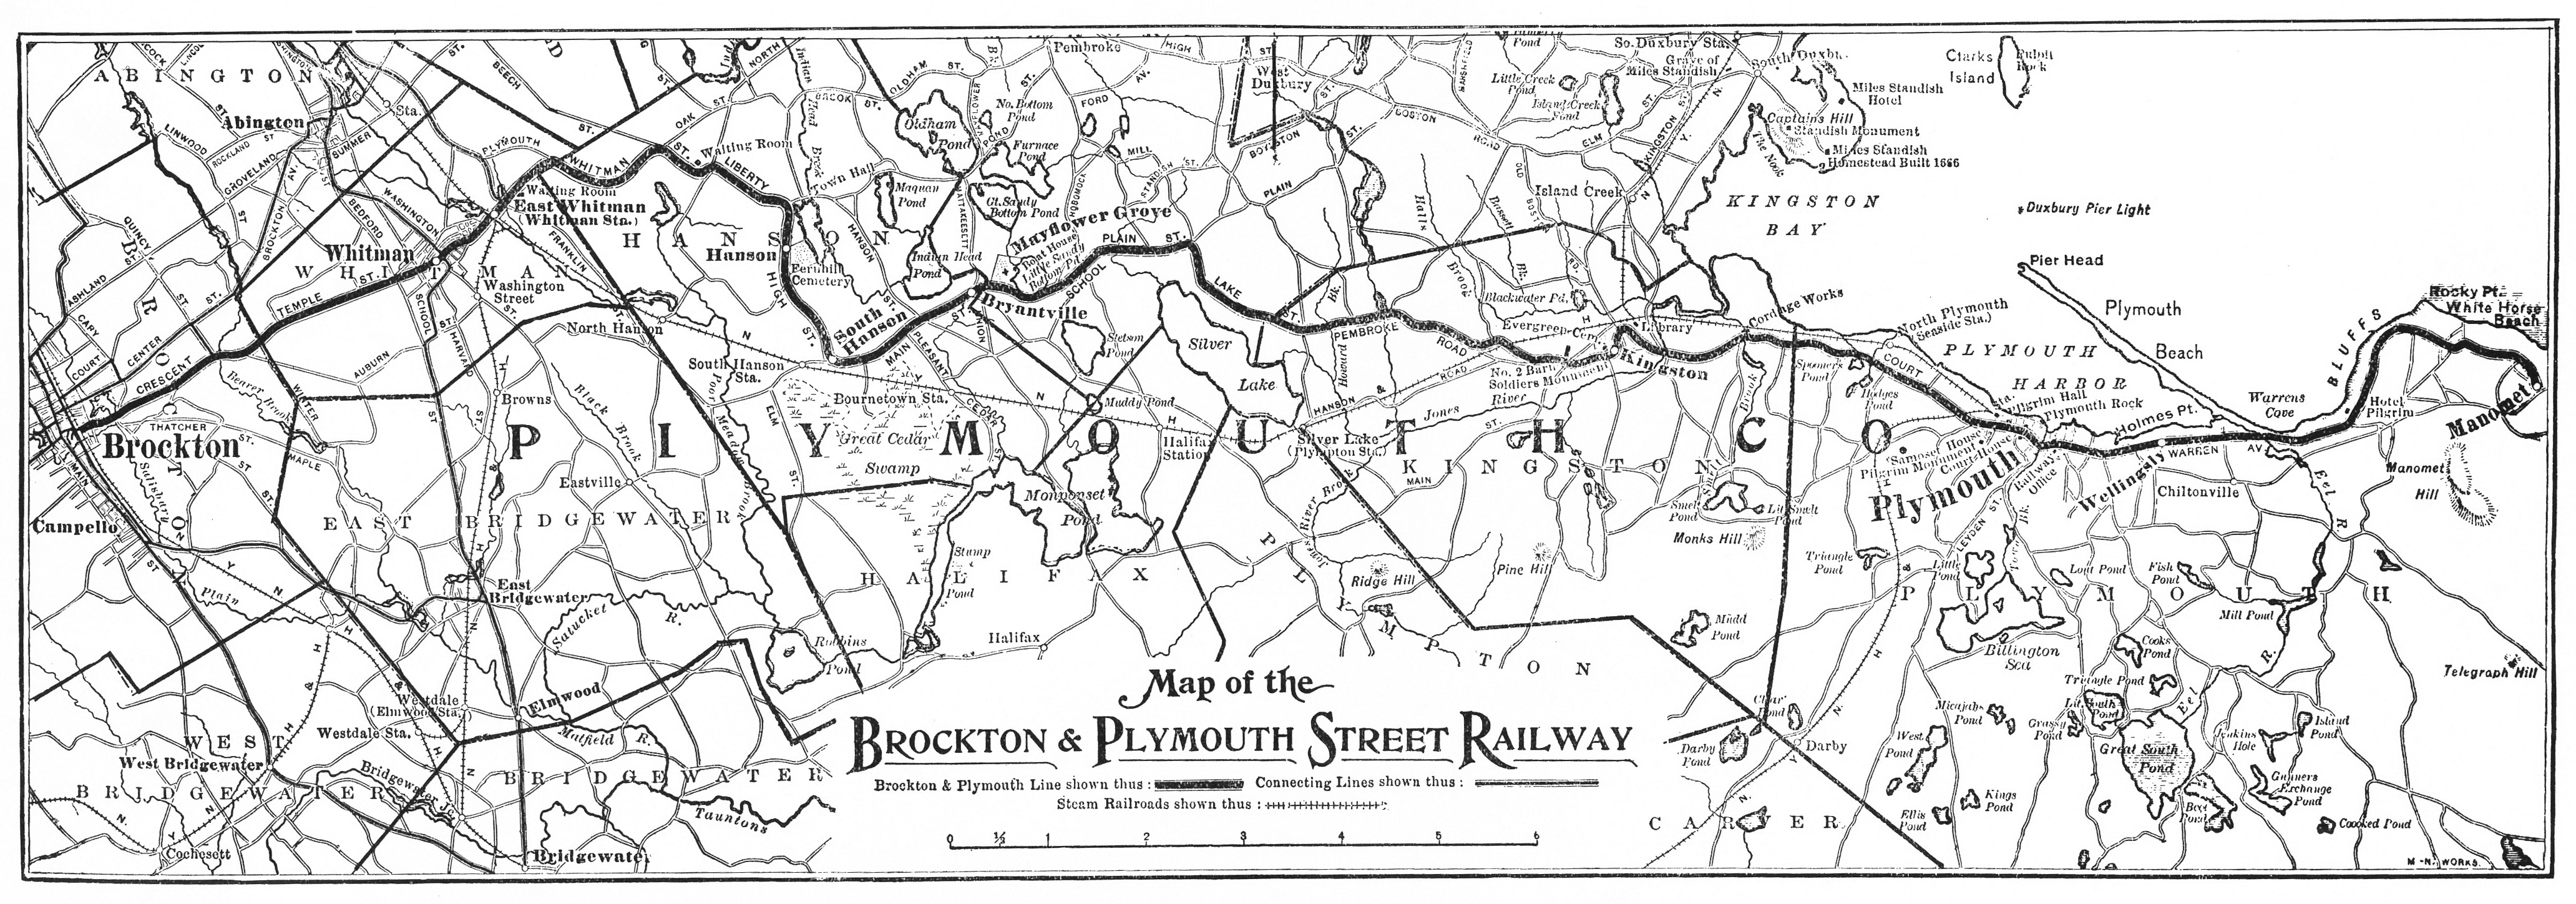 Map of the Brockton & Plymouth Street Railway, n.d.